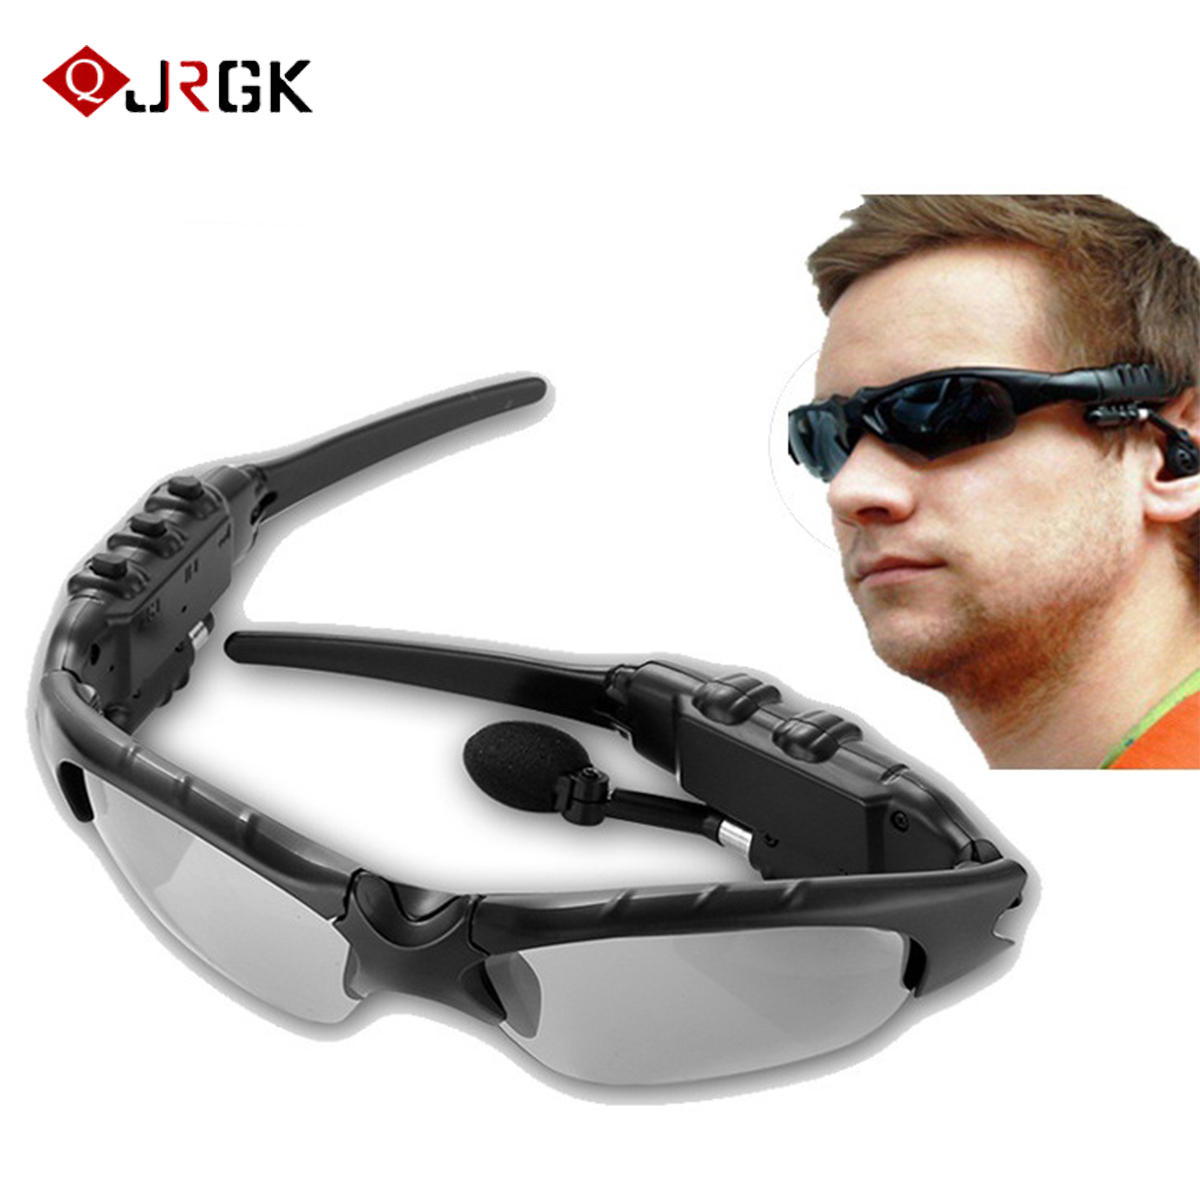 Bluetooth earphone Outdoor with Music Portable earphone glasses Earbuds Stereo Wireless earphone For iPhone Samsung Huawei